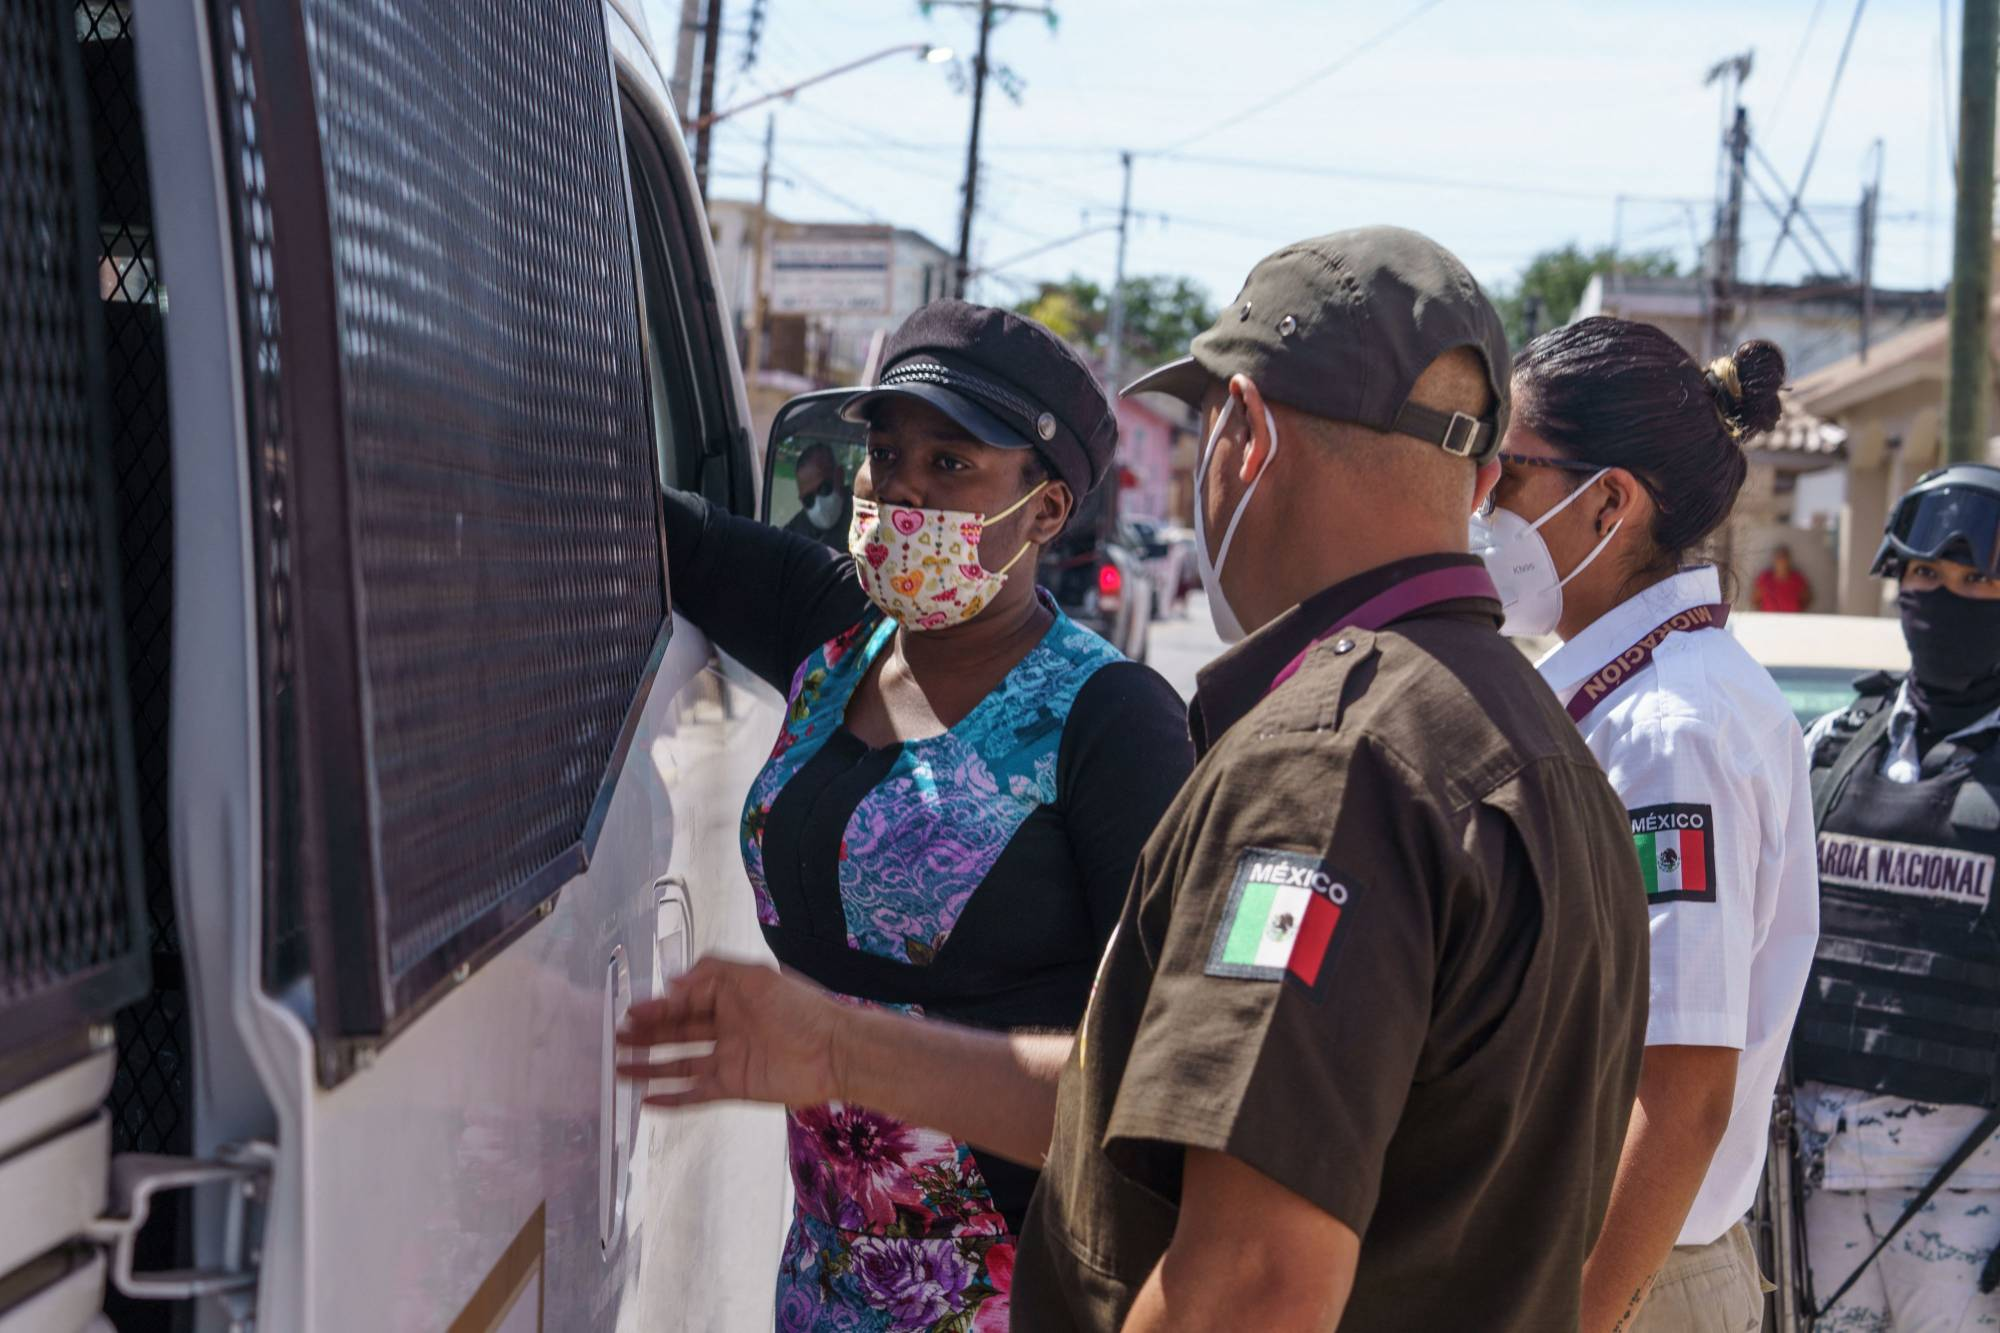 A Haitian woman is detained by Mexican immigration authorities in Ciudad Acuna, Mexico, on Wednesday. | AFP-JIJI